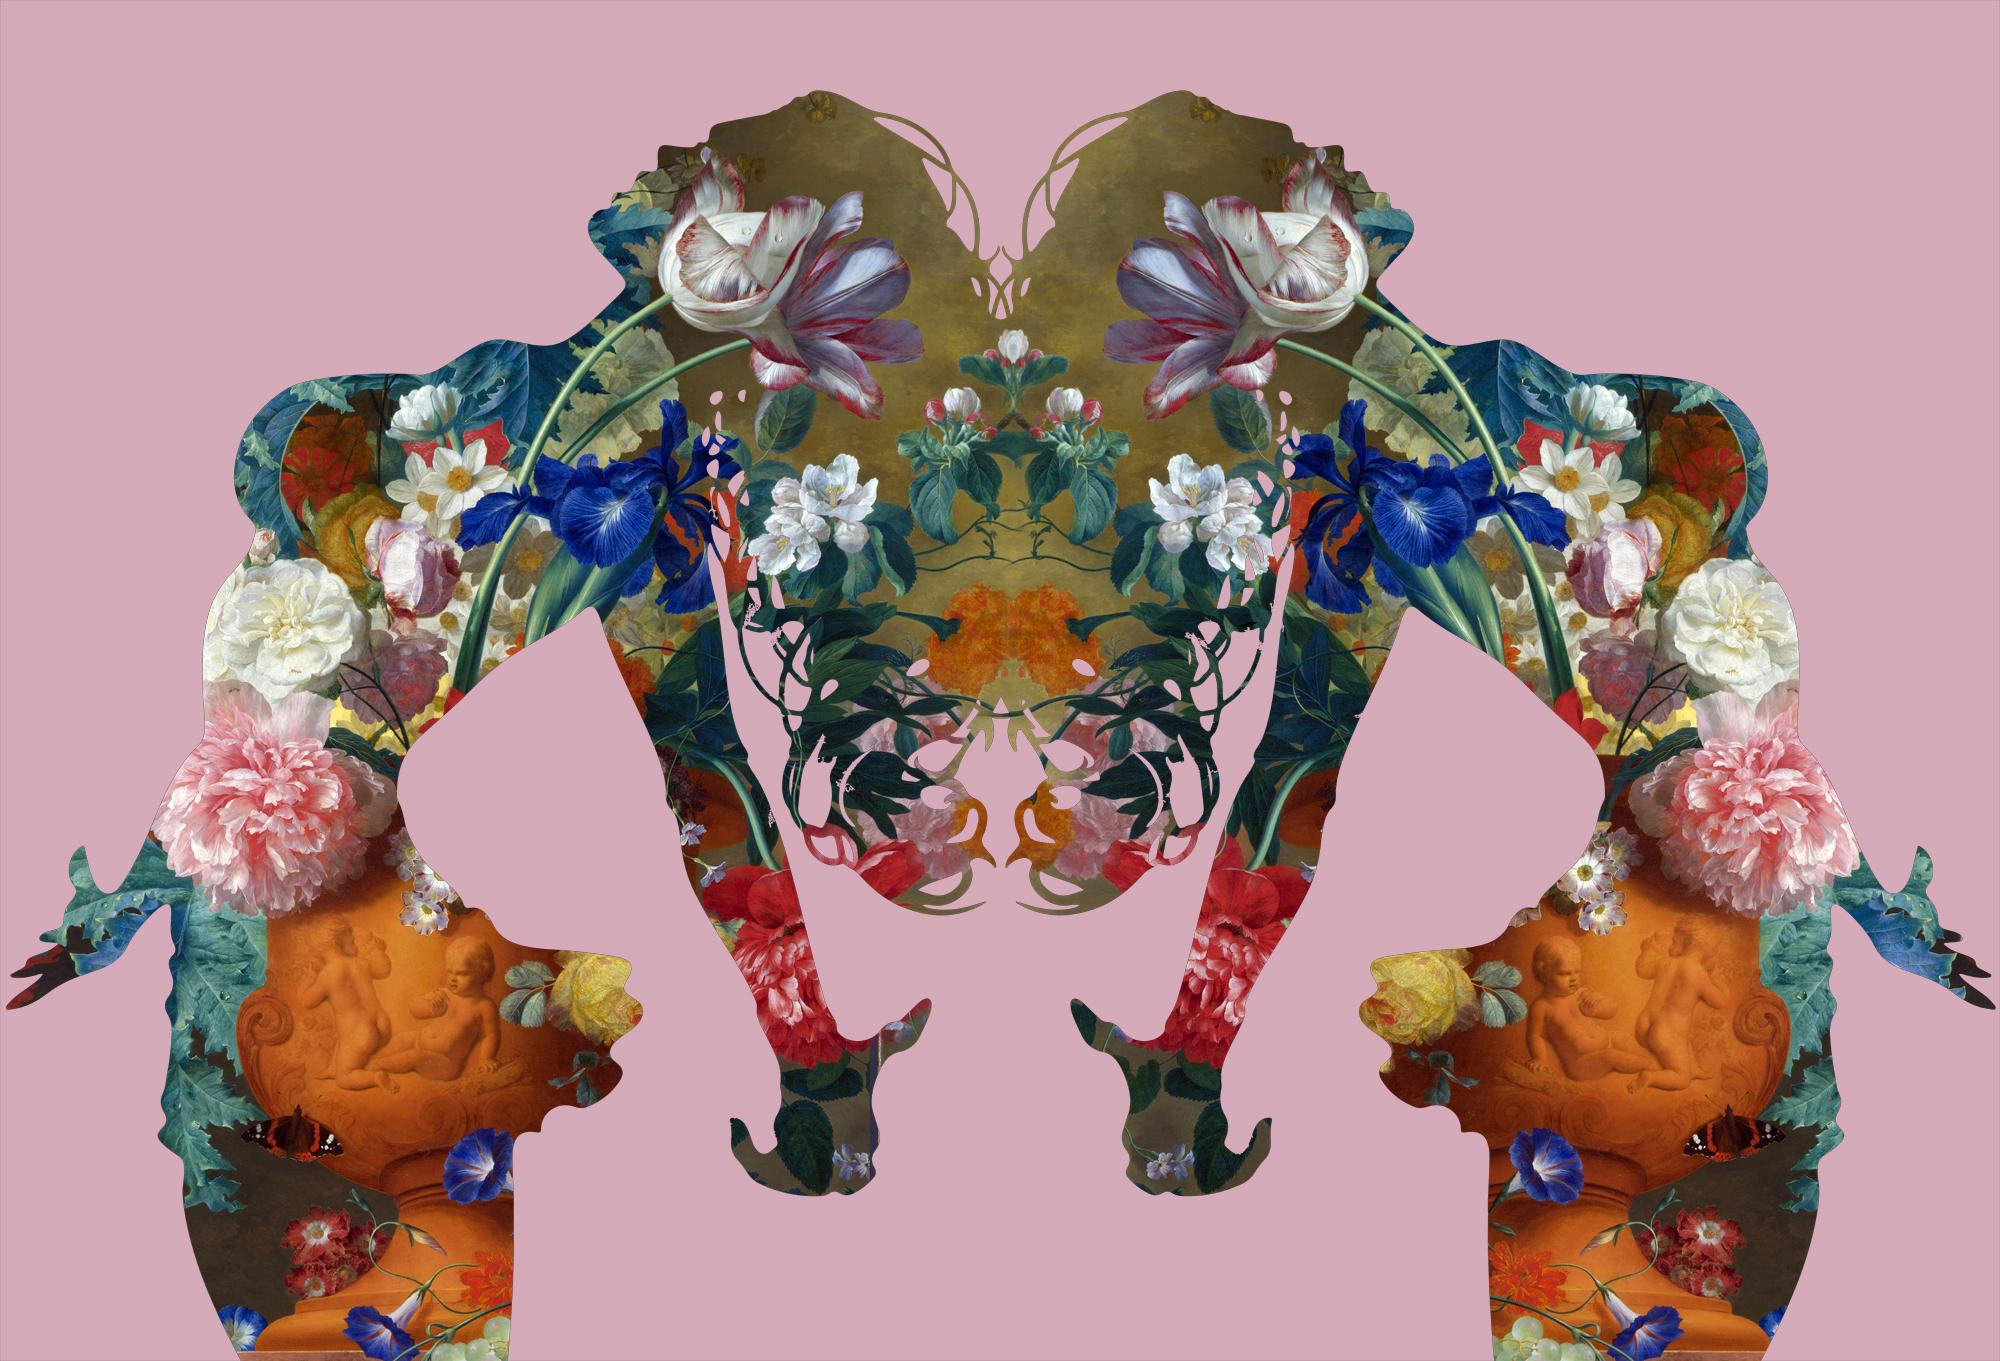 Mater Natura (Pink) - Feminine Mother Nature Archetype with Florals by Agent X